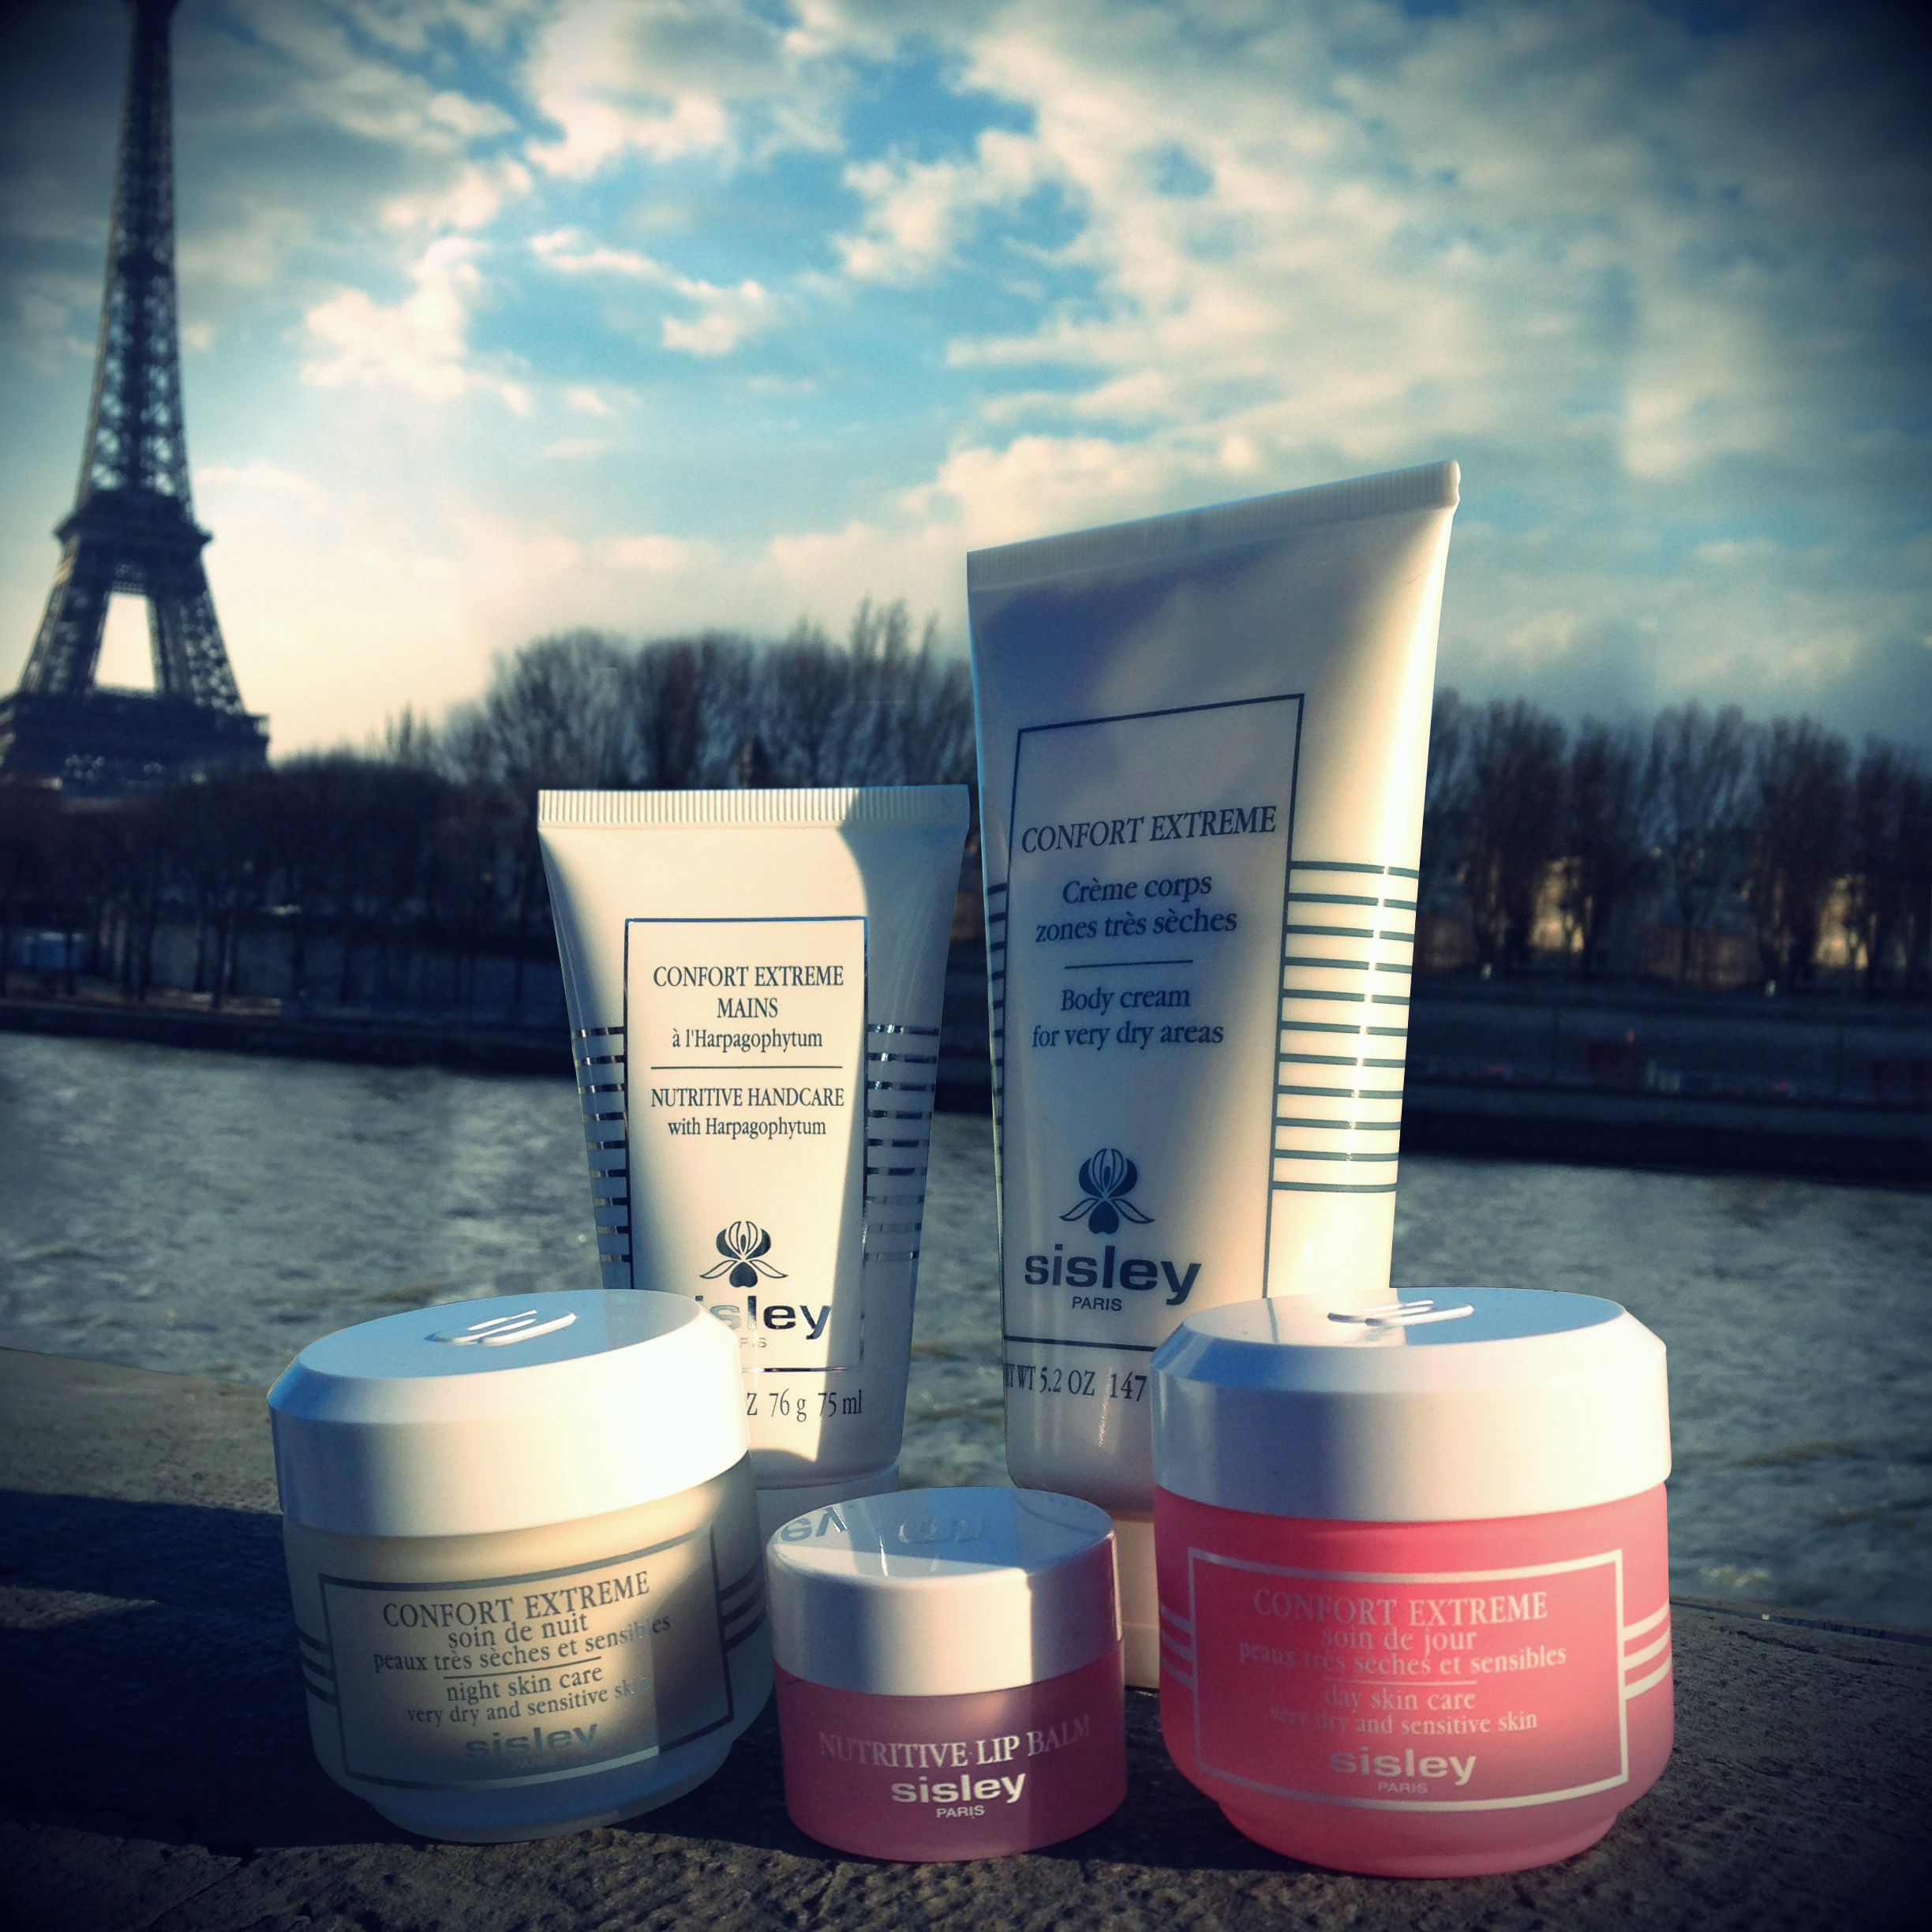 The Confort Extreme Line For Fabulous Skin I Wouldn T Be Without It Beauty Favorites Skin Care Sisley Paris